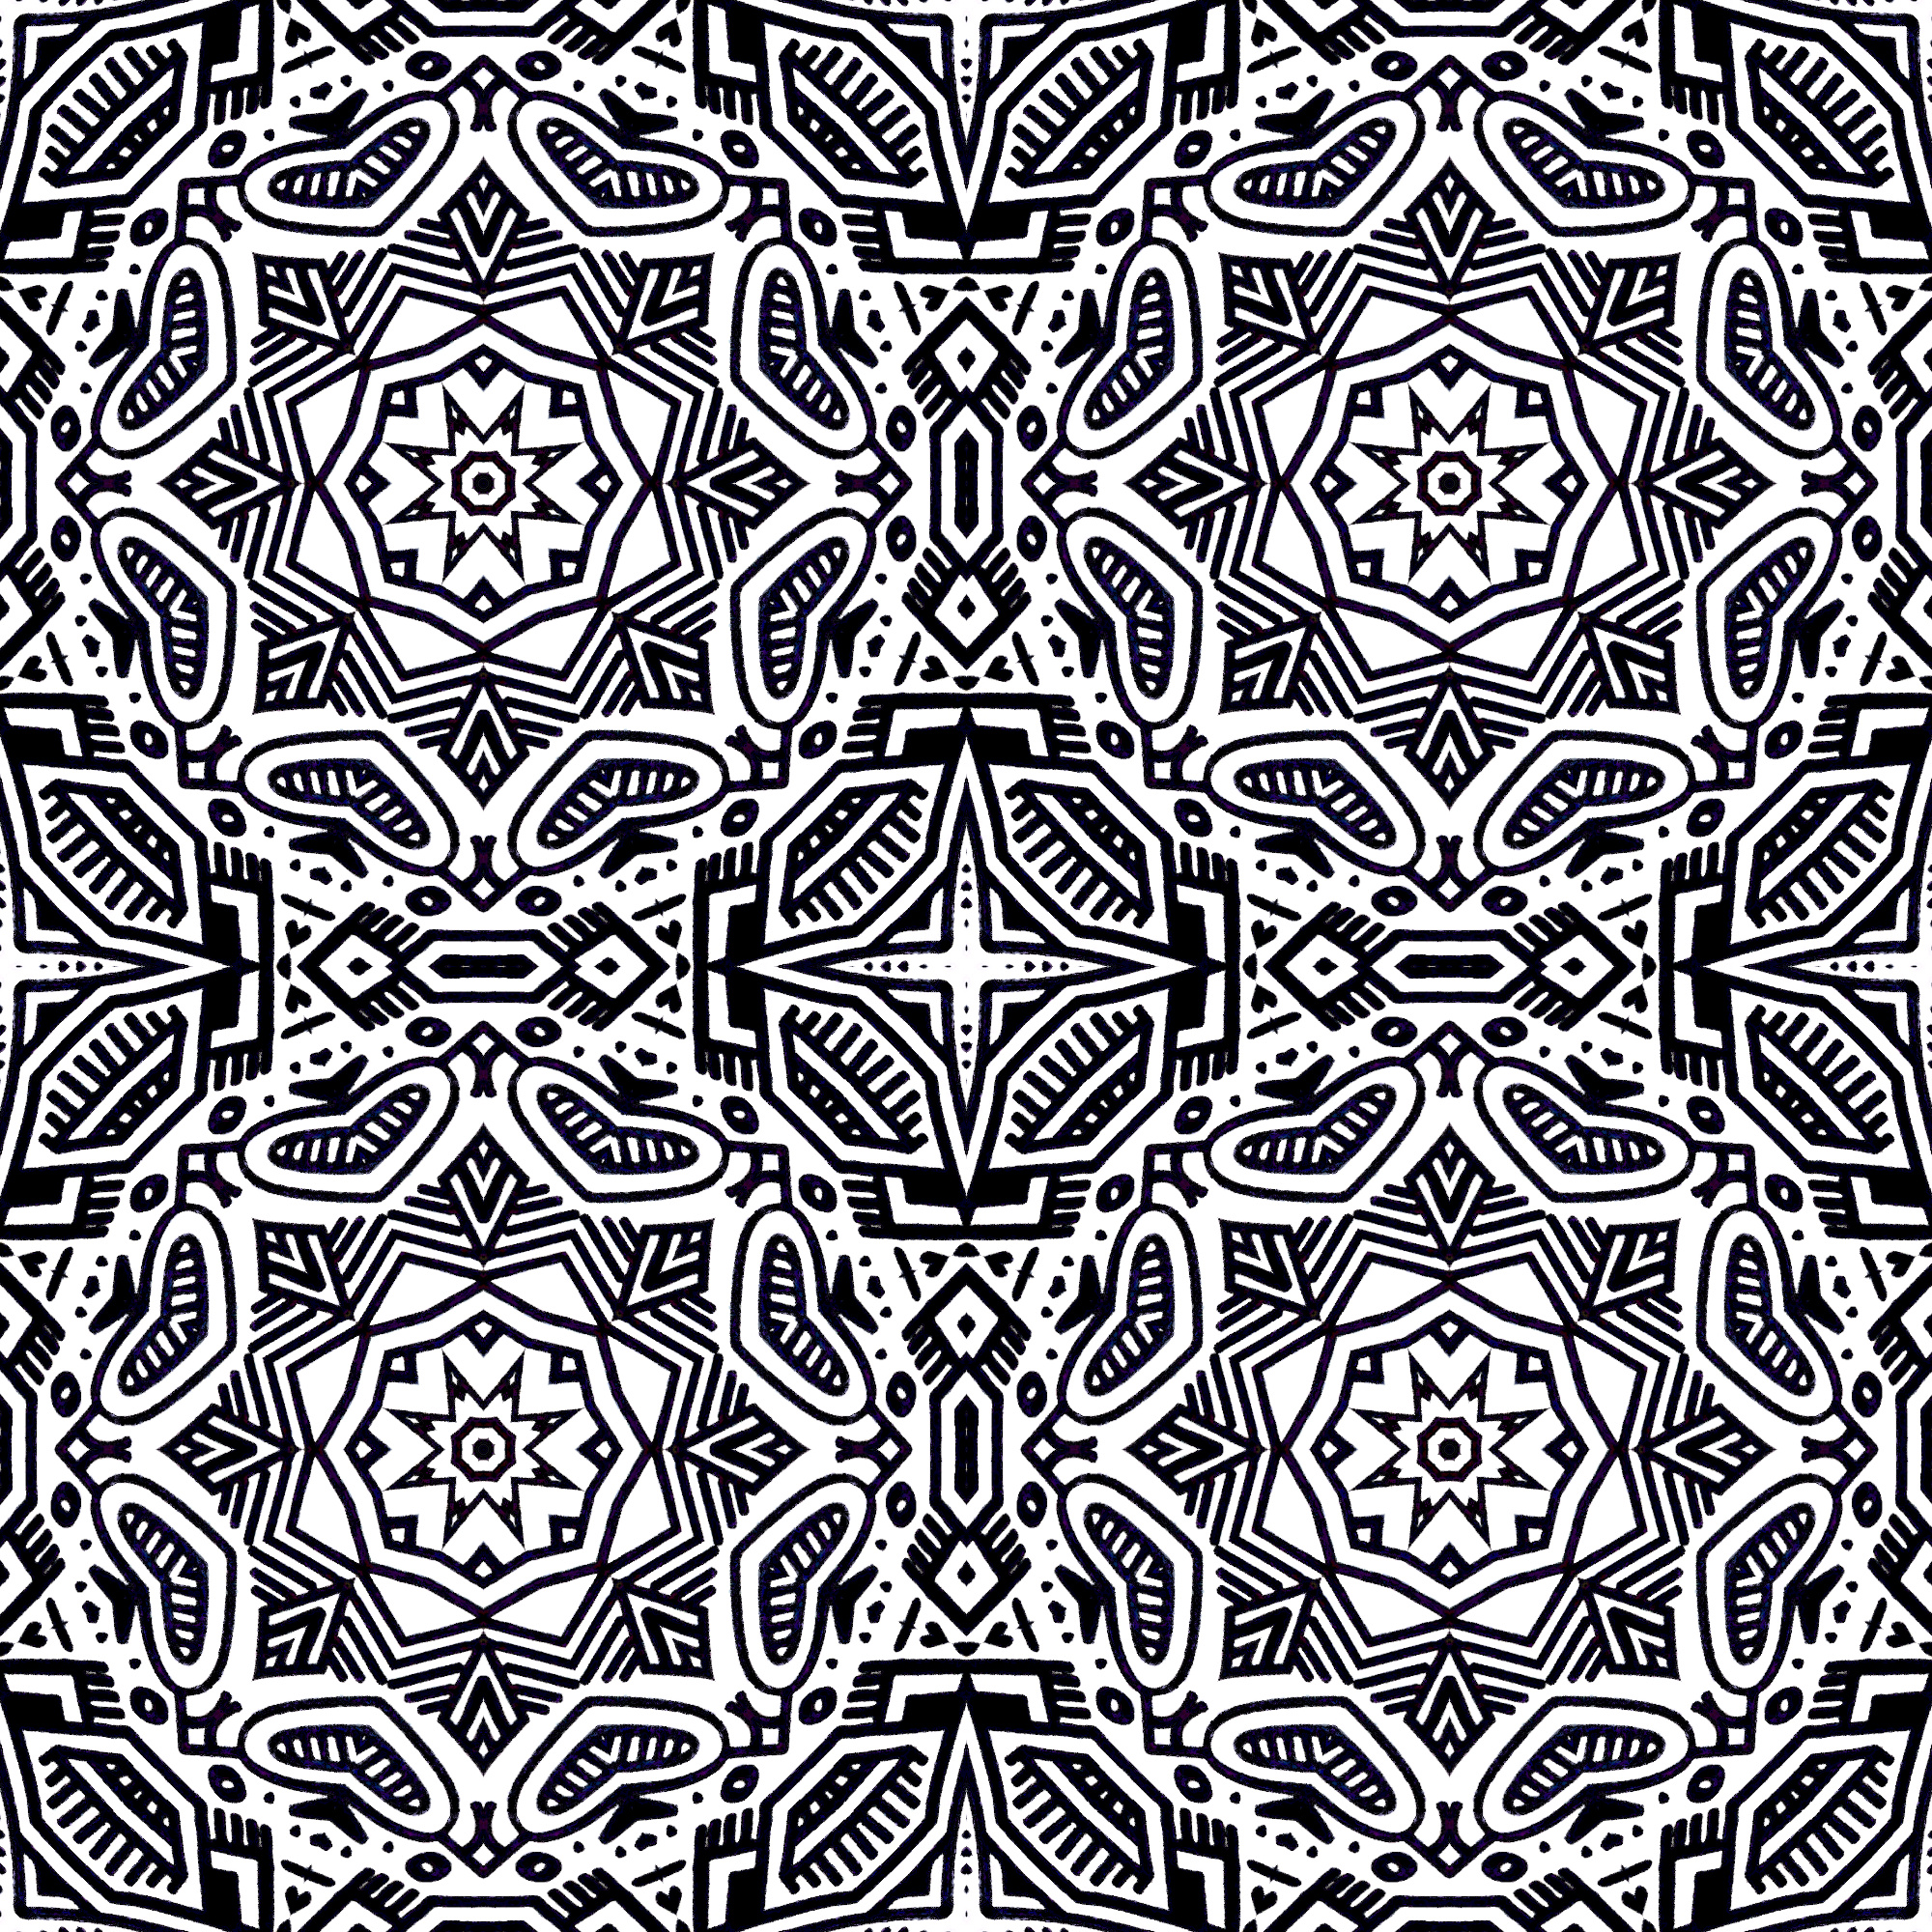 Tiled to ensure the pattern is pleasing to the eyeball. Always use a copy of the original layer so you don't lose it.